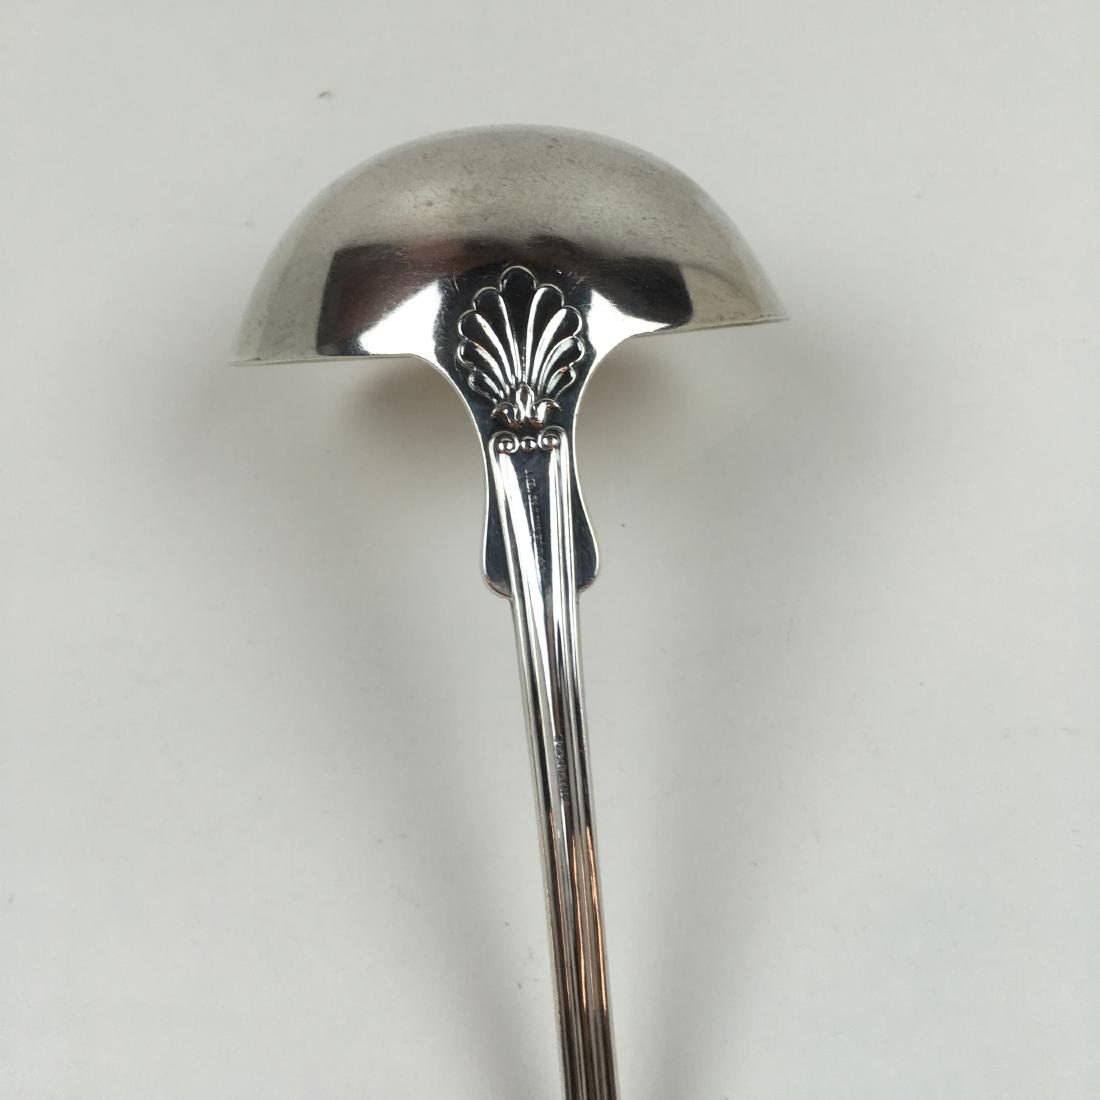 STERLING SILVER LADLE BY J. E. CALDWELL & CO. - 7